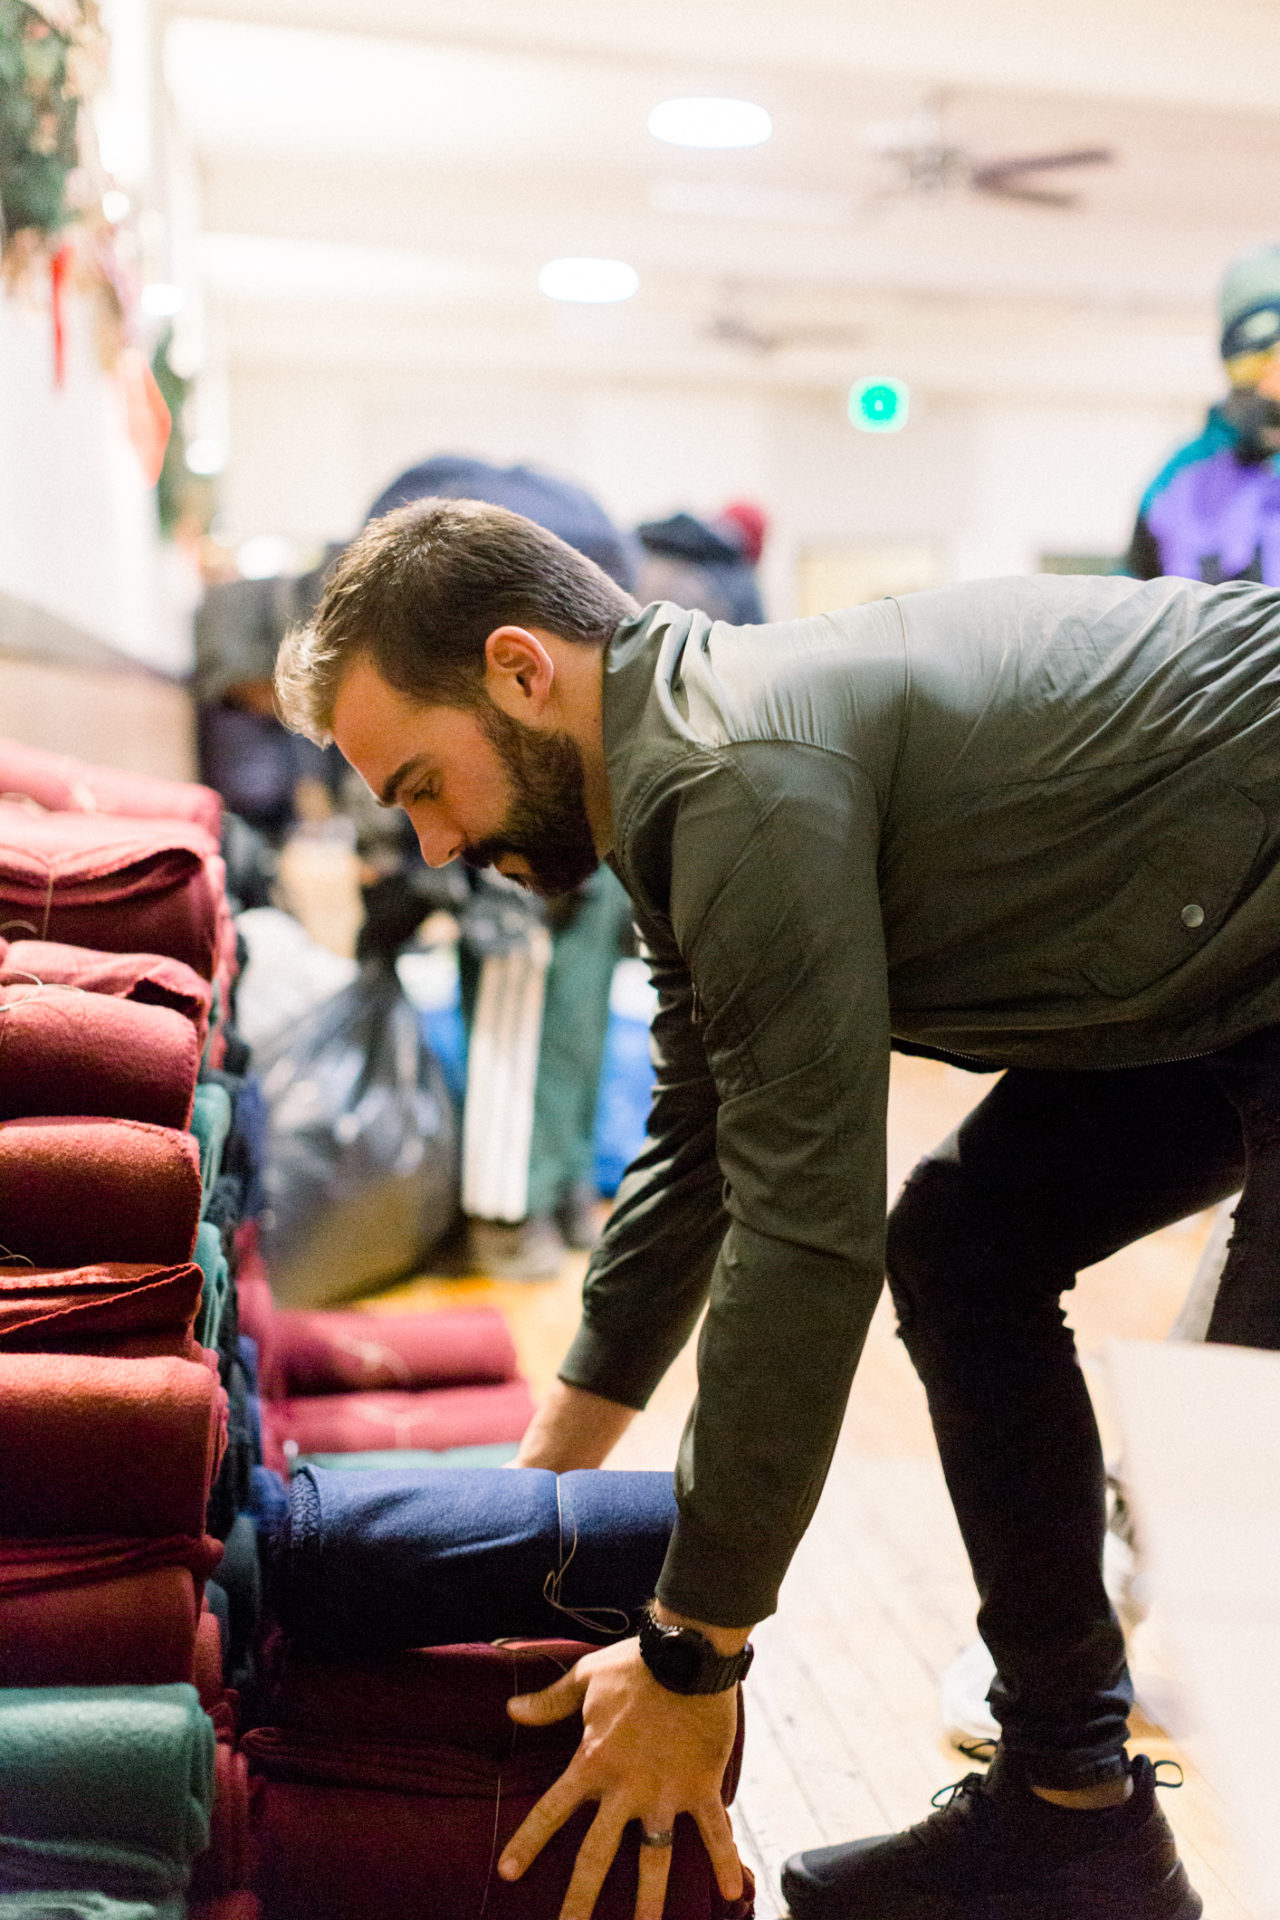 We've partnered with Sackcloth & Ashes, an awesome organization dedicated to helping homeless populations around the country by donating blankets to those who need them this holiday.